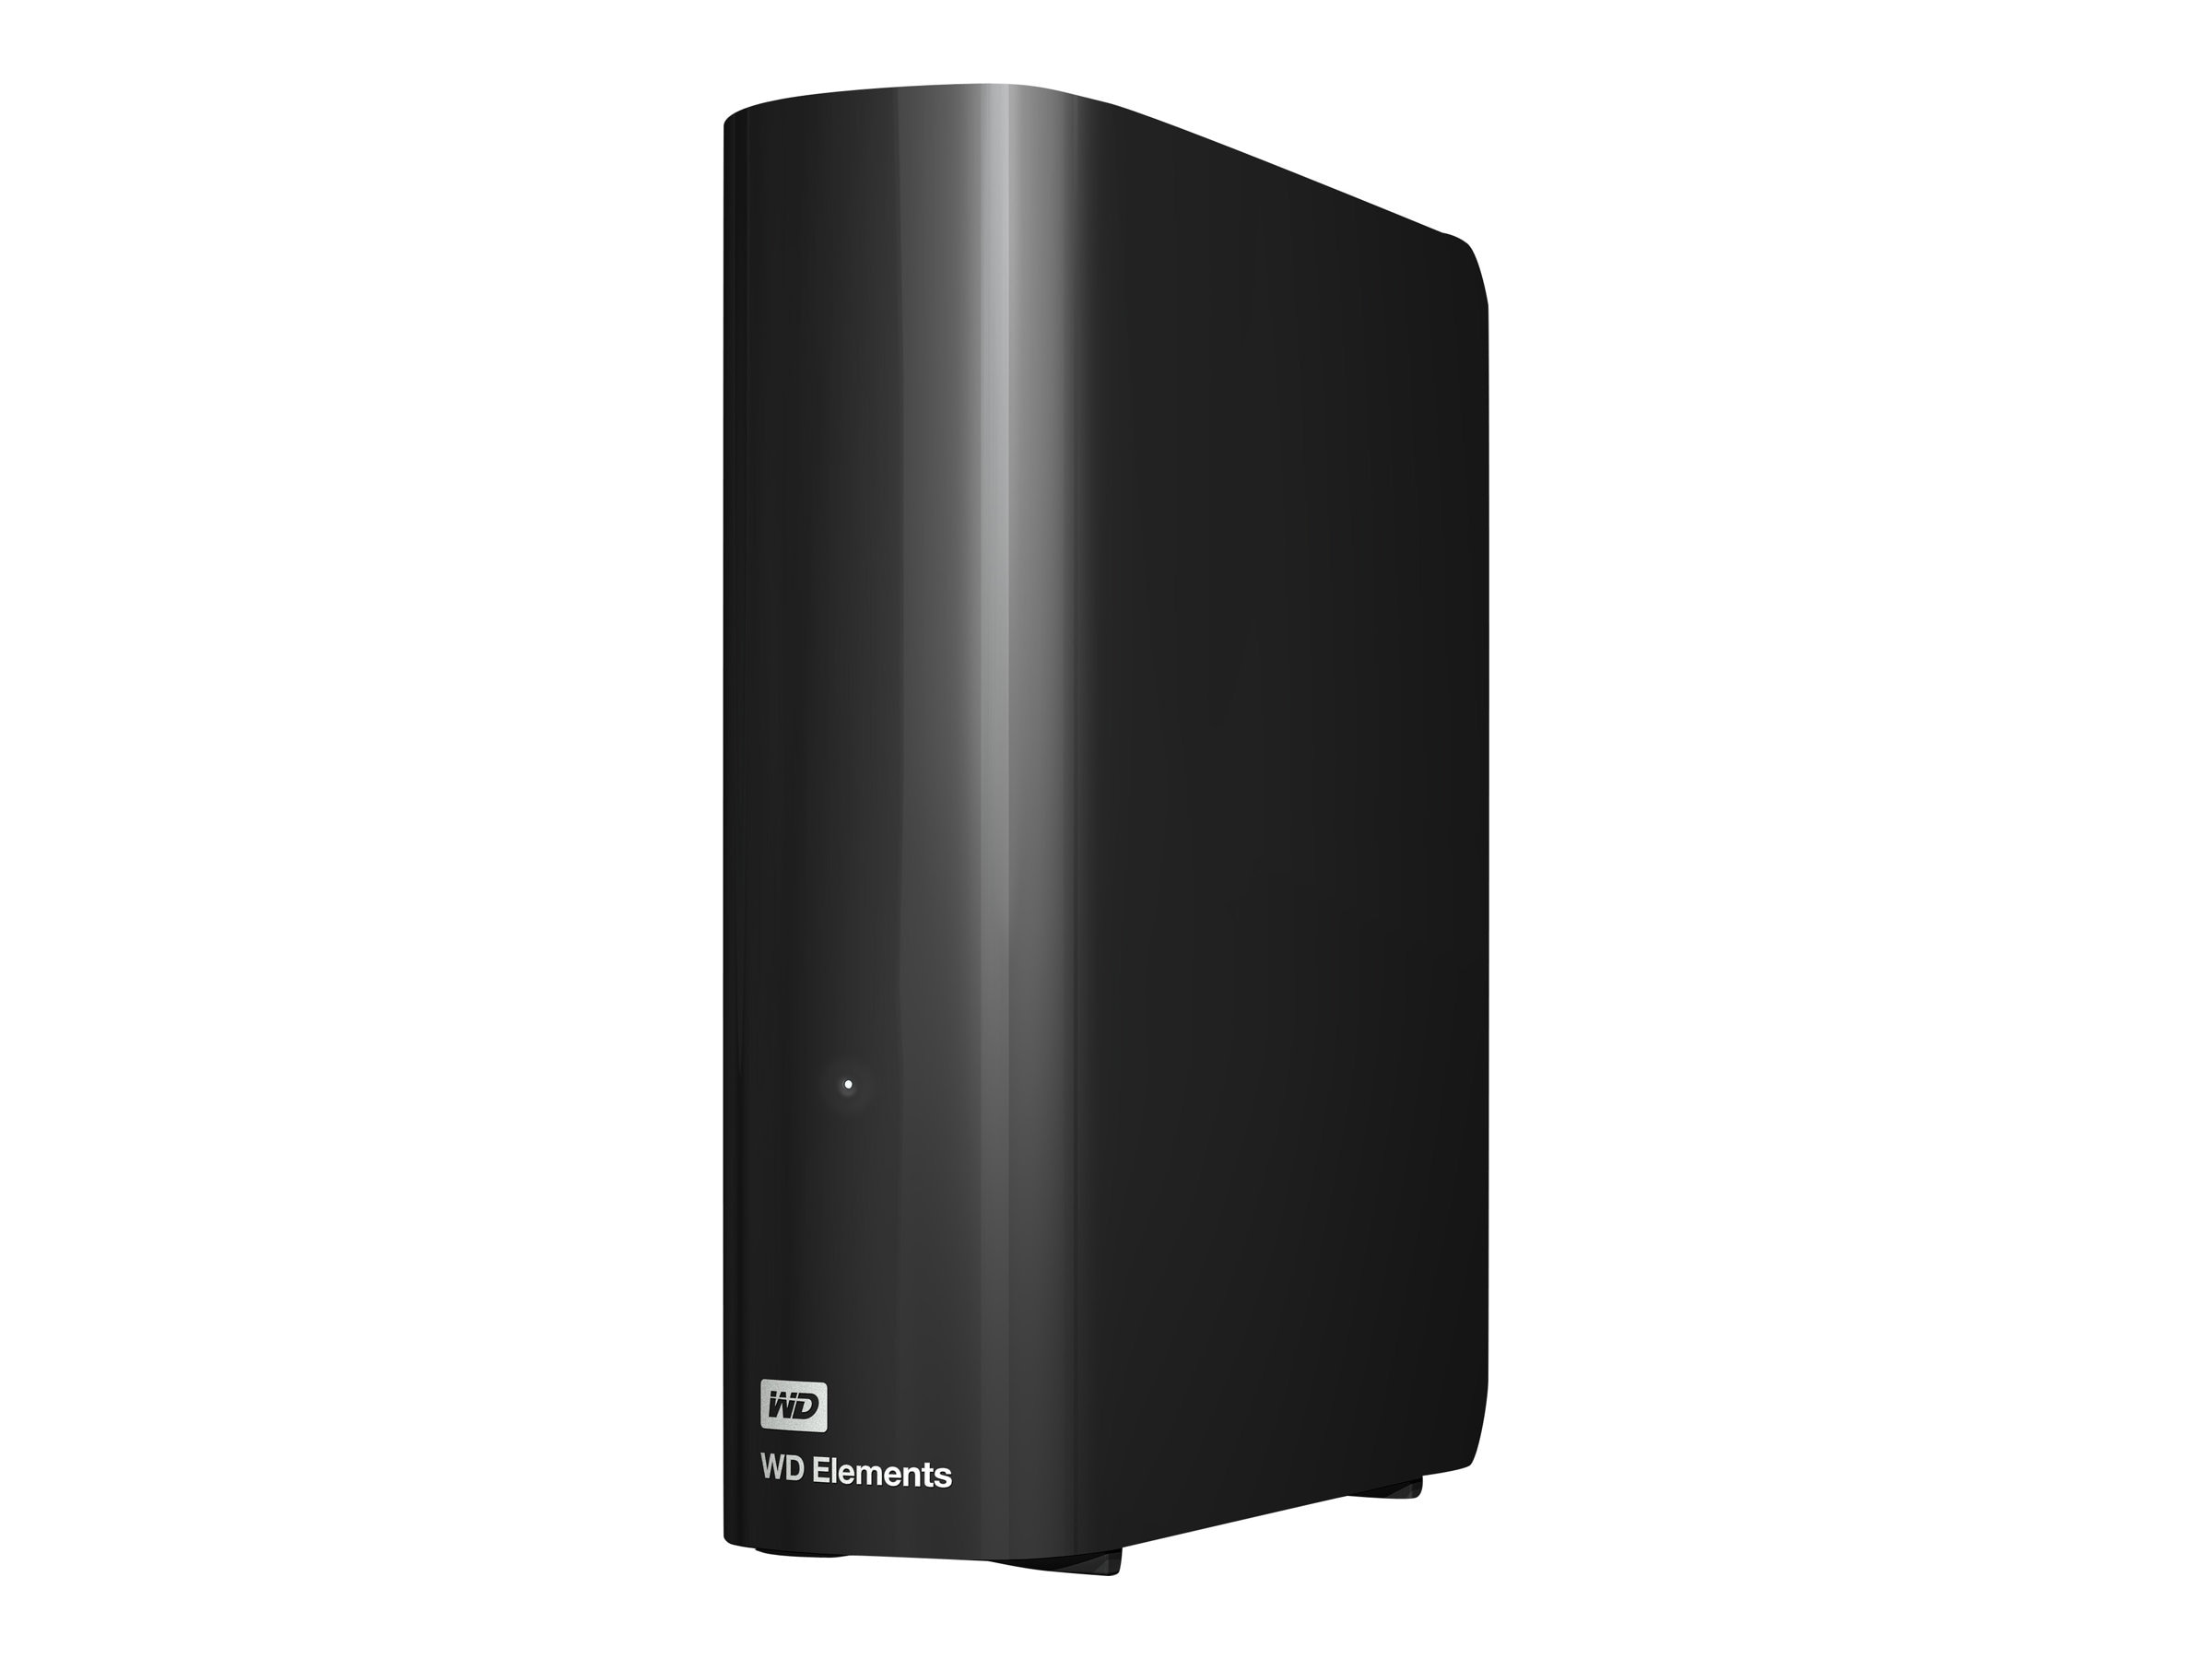 WD 4TB Elements Desktop USB 3.0 External Hard Drive